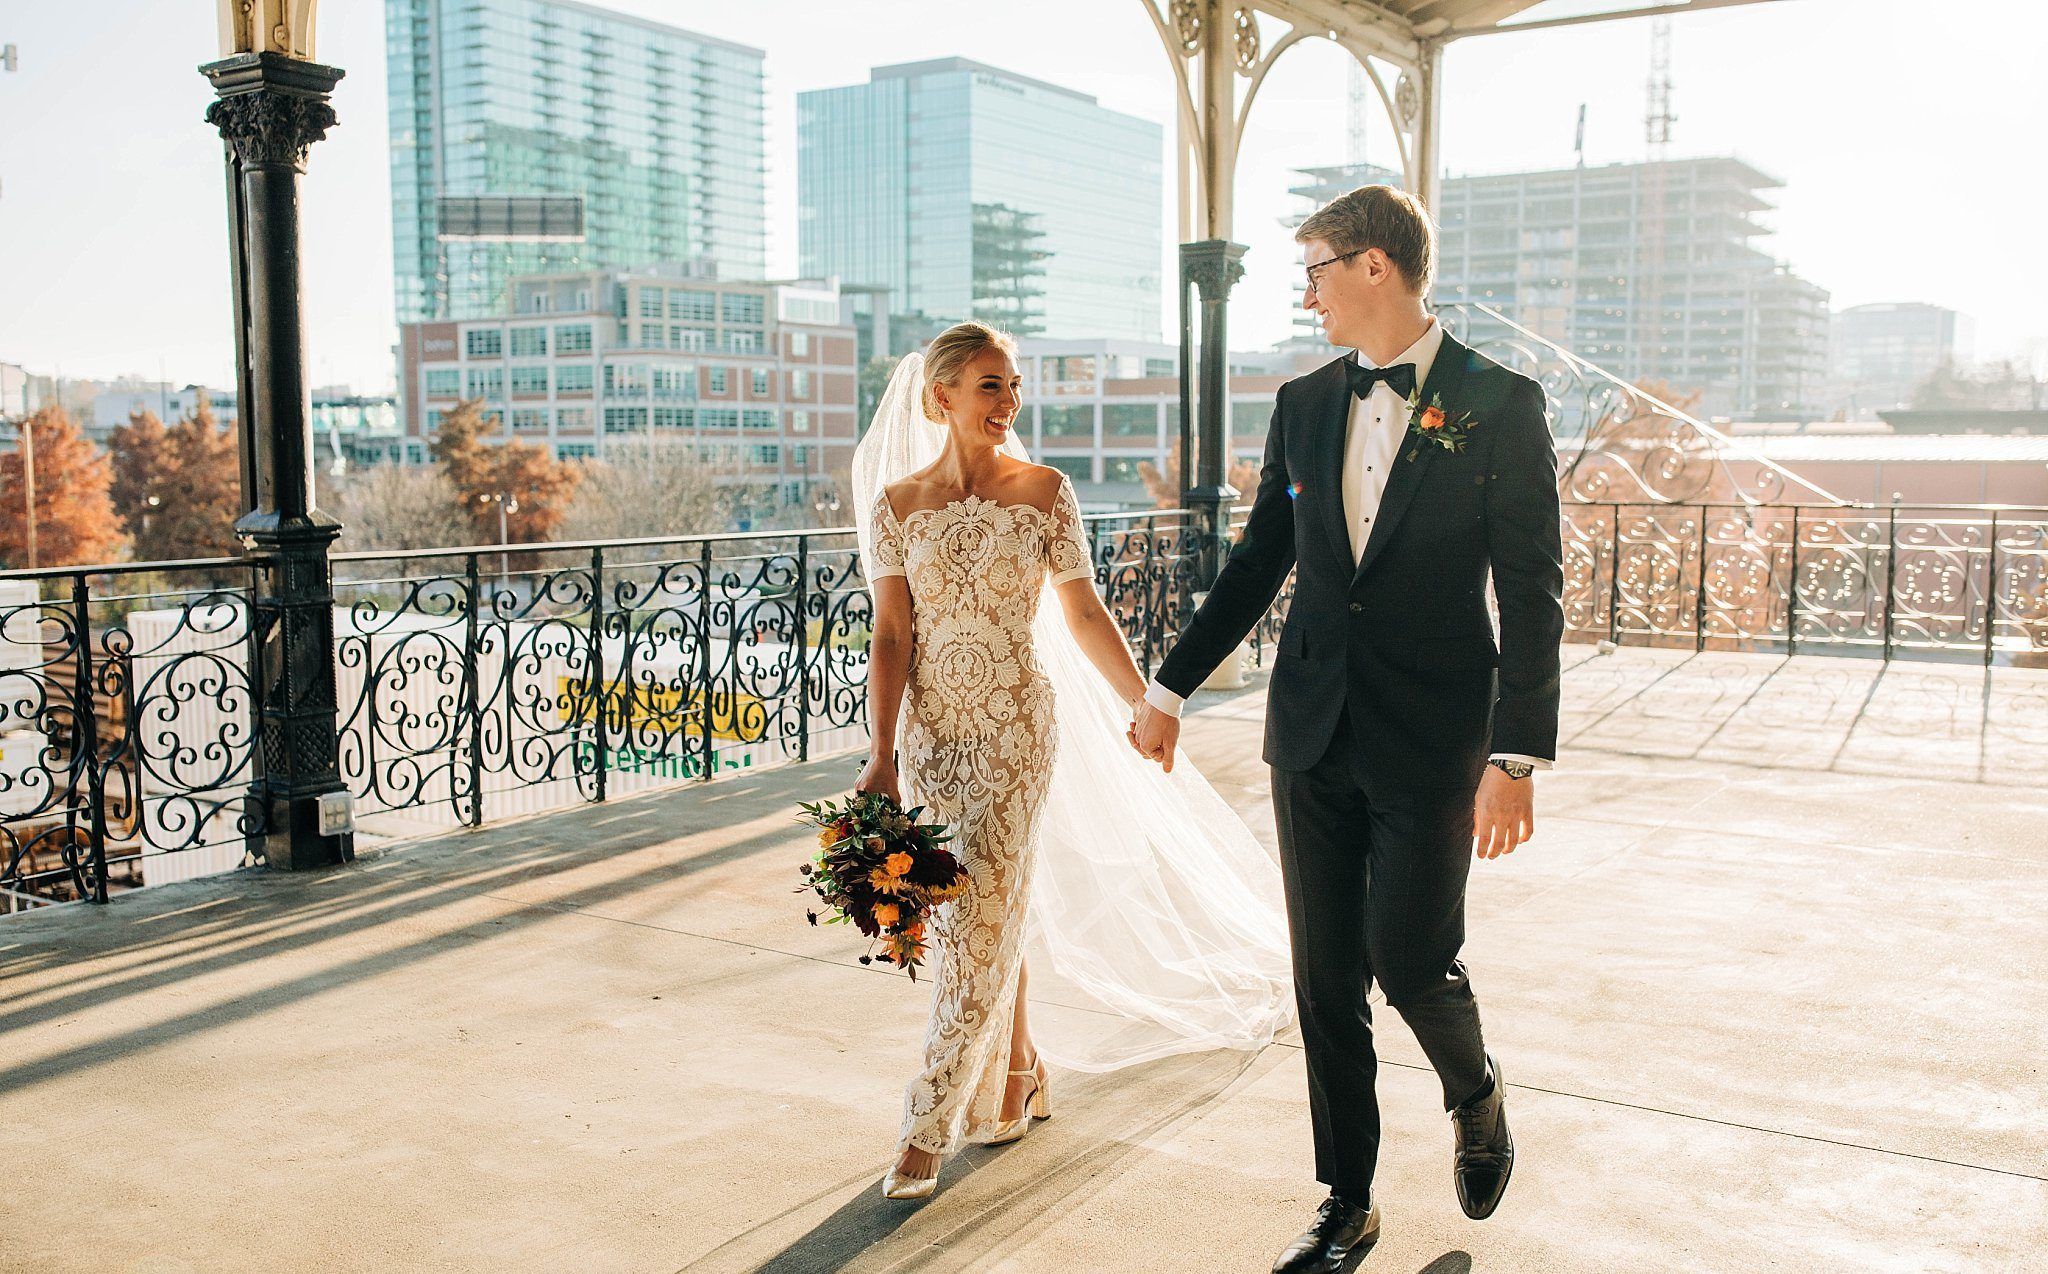 married couple portraits at nashville union station hotel wedding